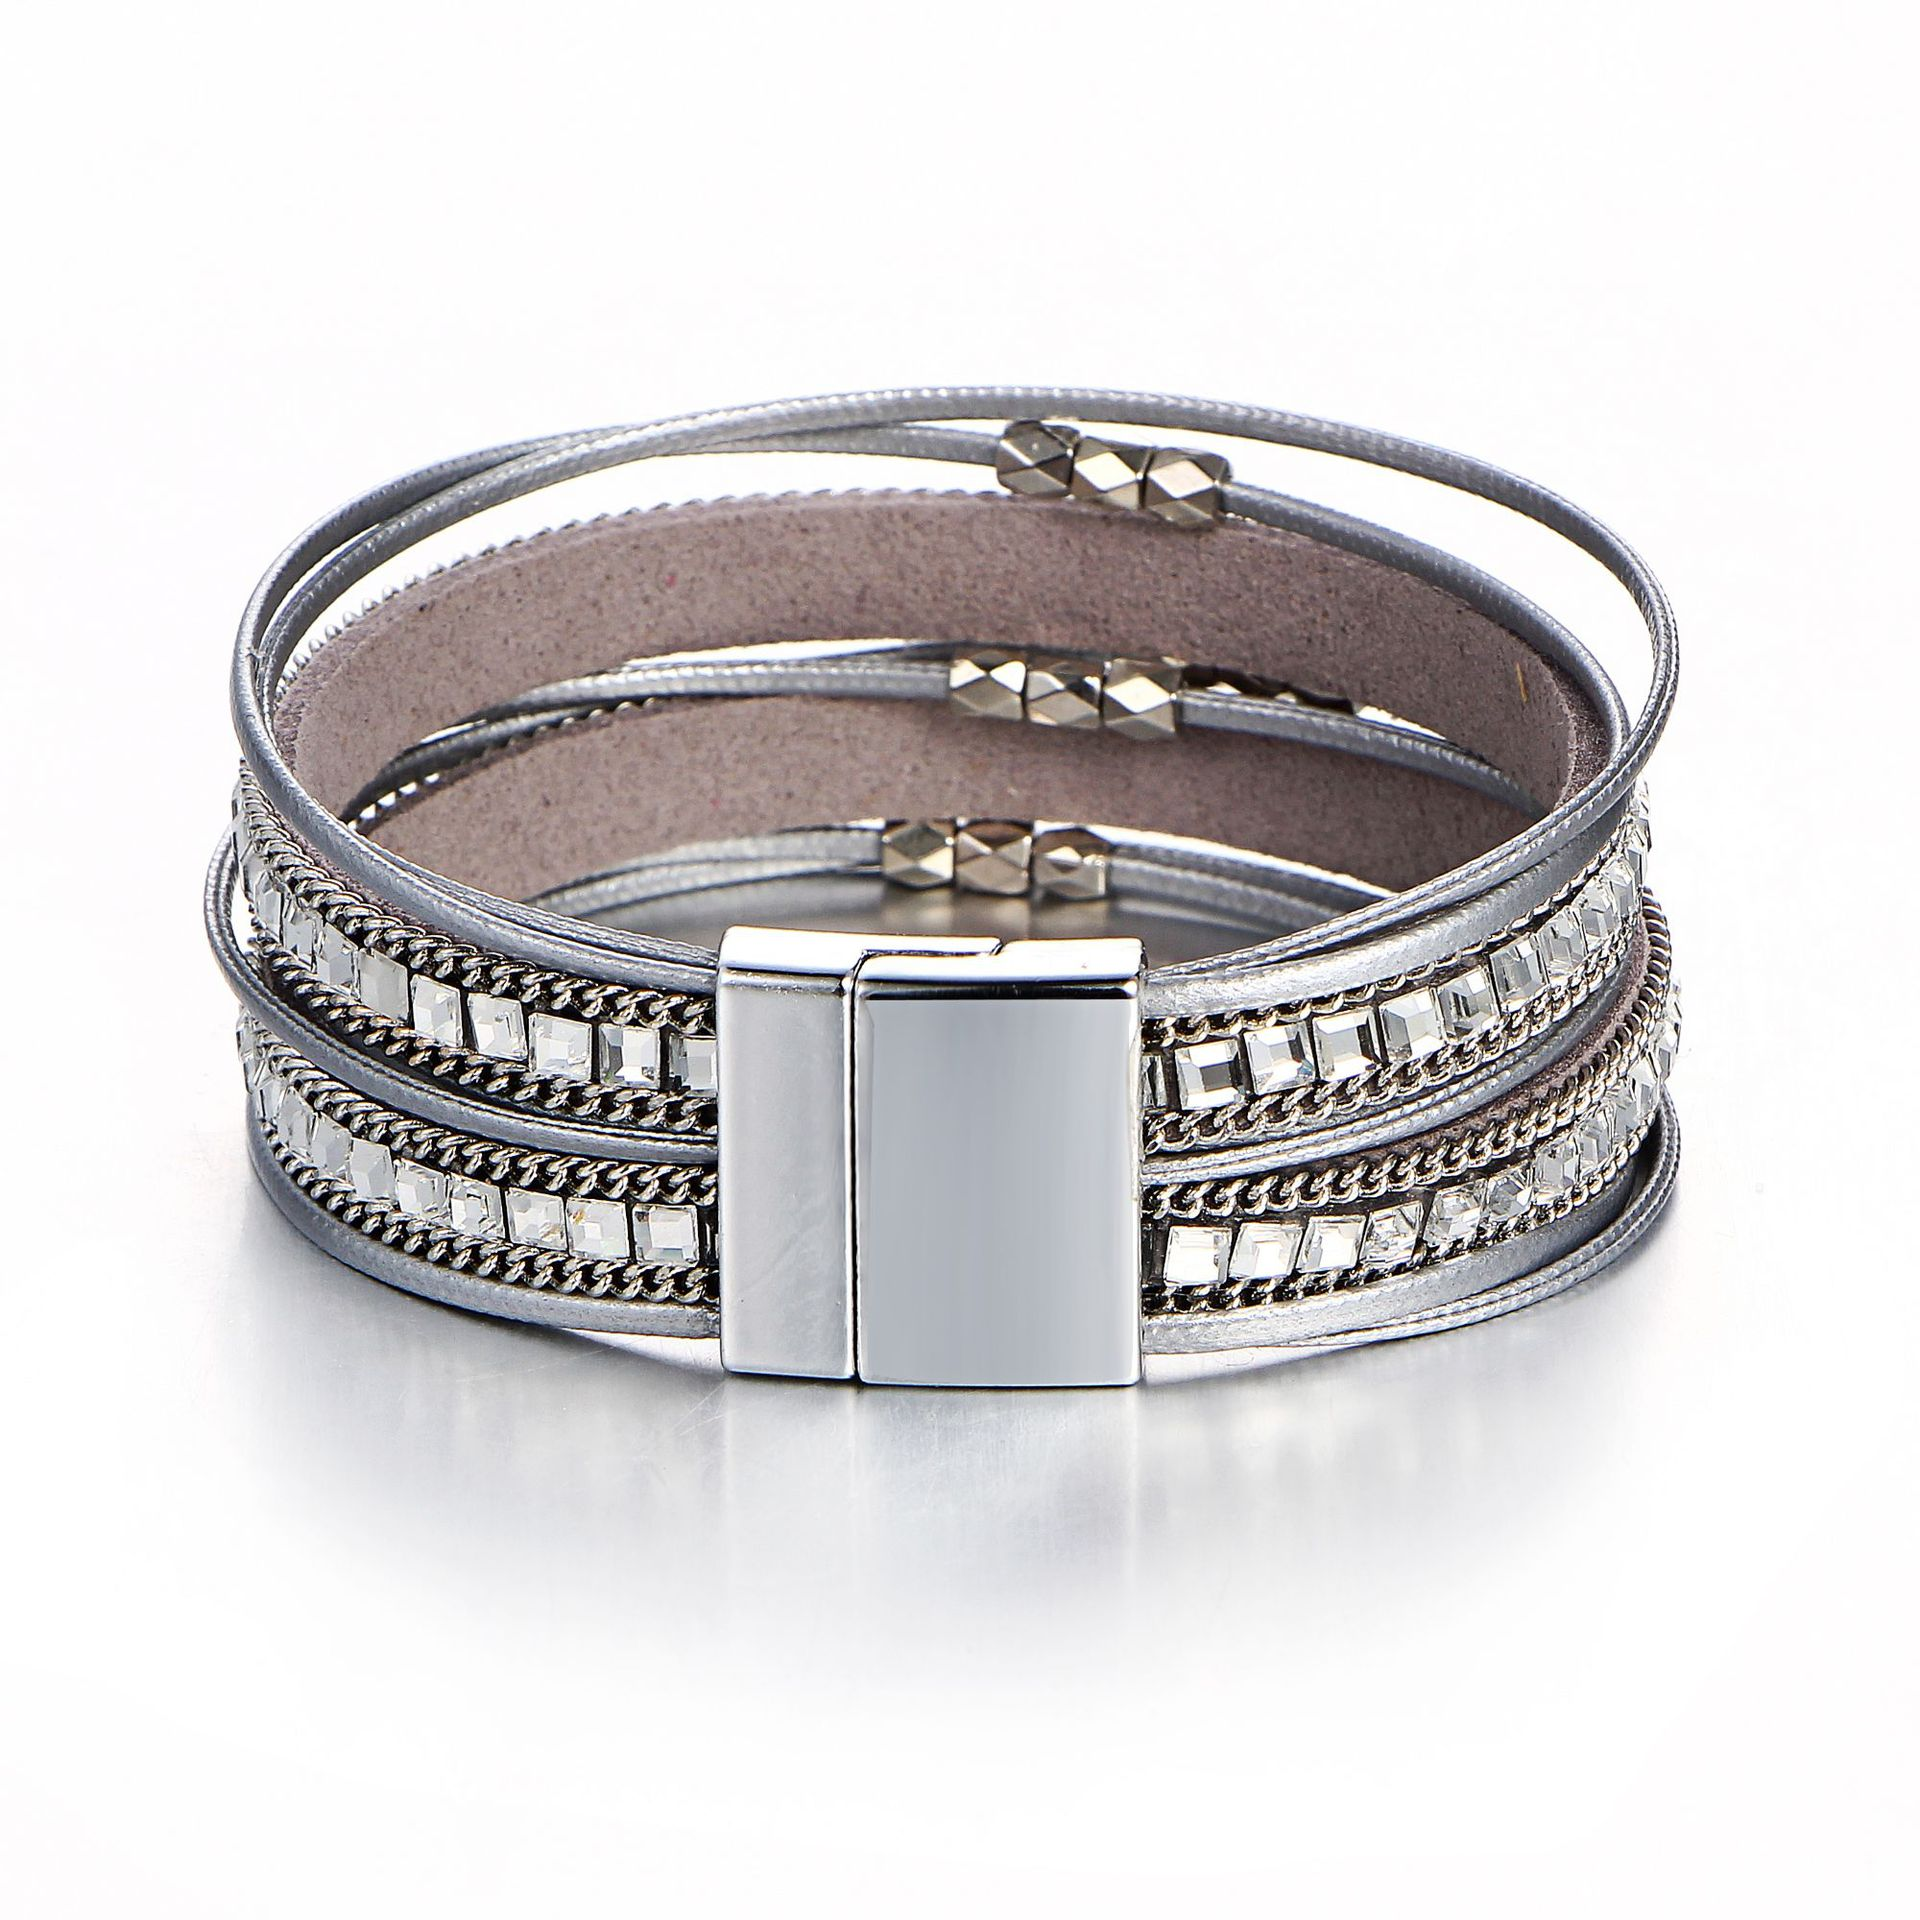 Wholesale Femme Leather Bracelet Fashion Rhinestone Magnetic Clasp Bracelet For Women